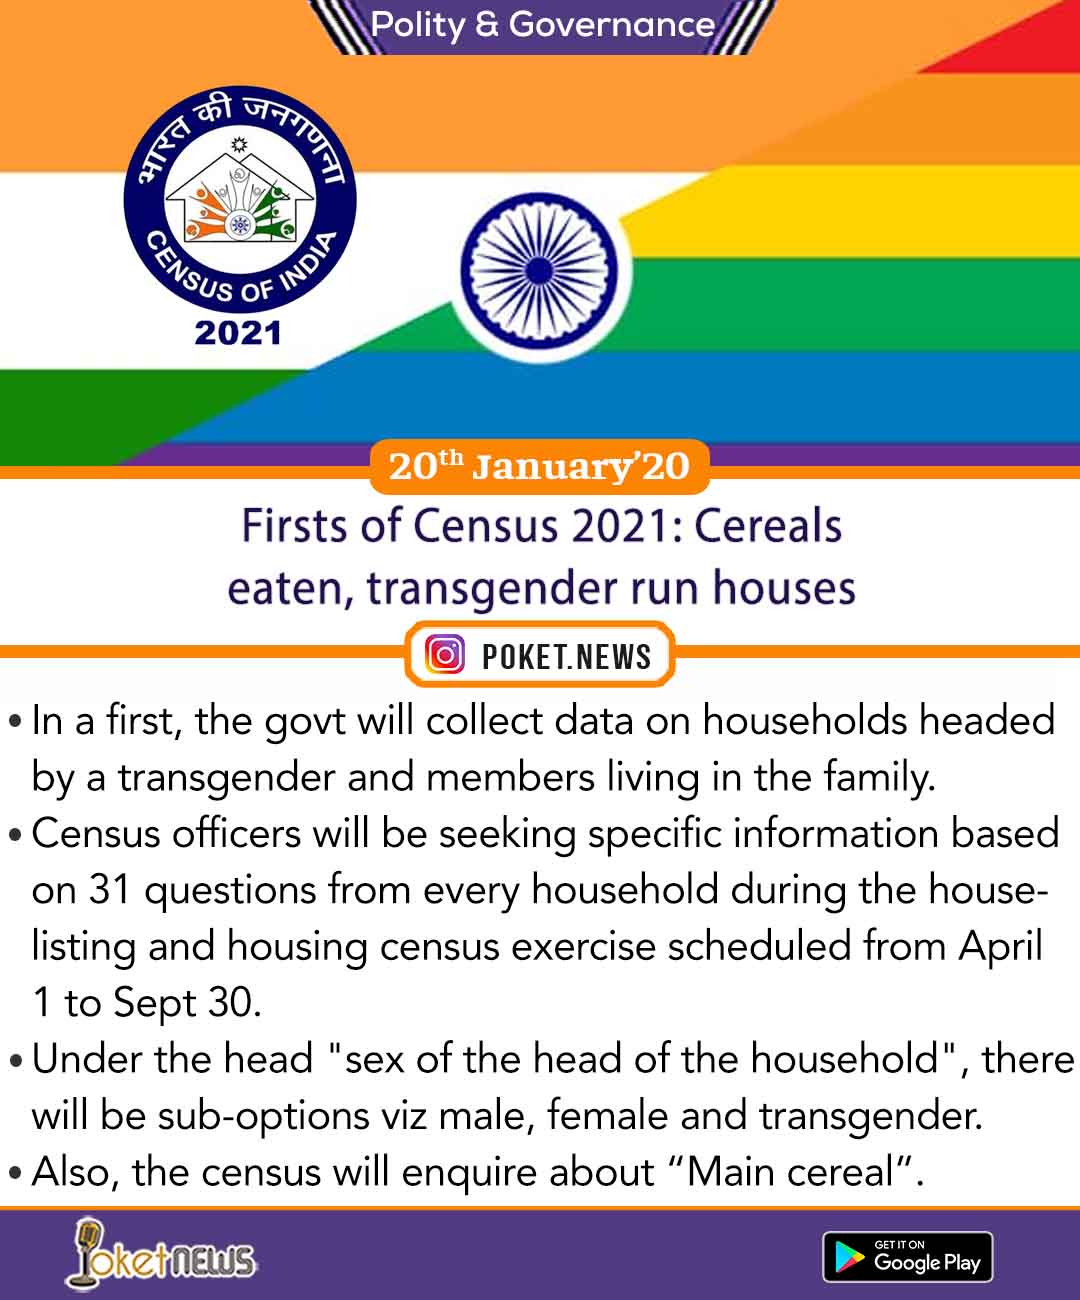 Firsts of Census 2021: Cereals eaten, transgender run houses